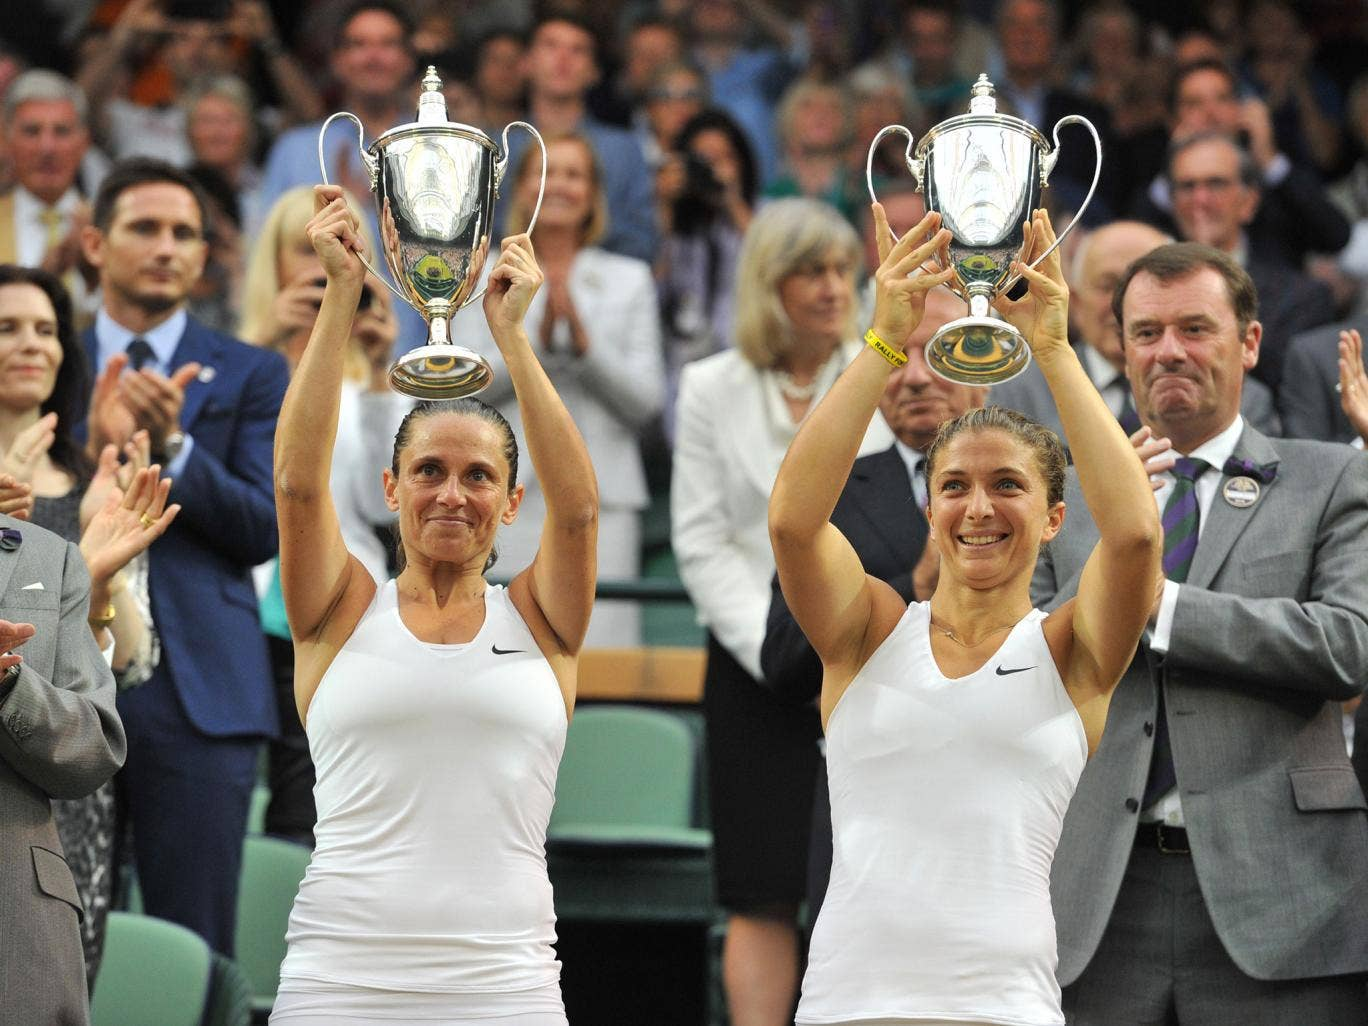 Italy's Sara Errani (R) and Roberta Vinci hold their winners' trophies during the presentation after winning their women's doubles final